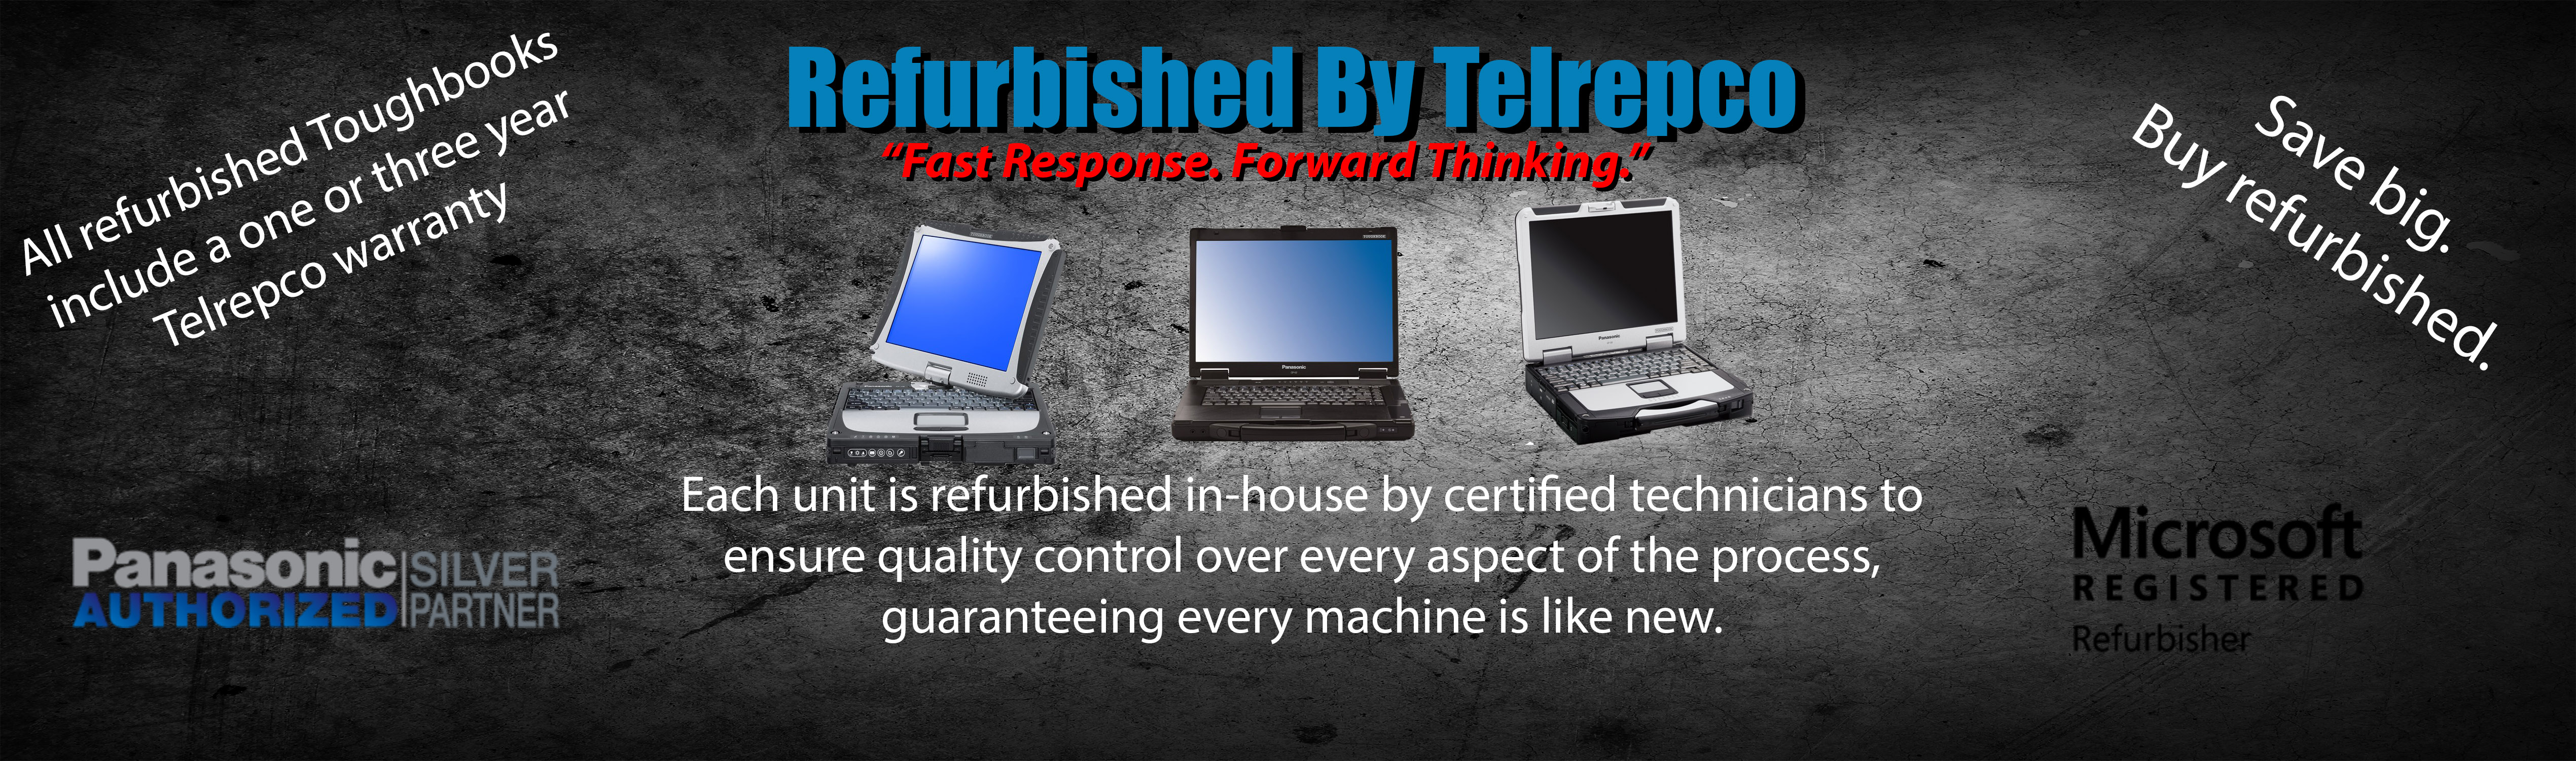 Each toughbook is refurbished in-house by certified technicians to ensure quality control over every aspect of the process, guaranteeing every machine is like new